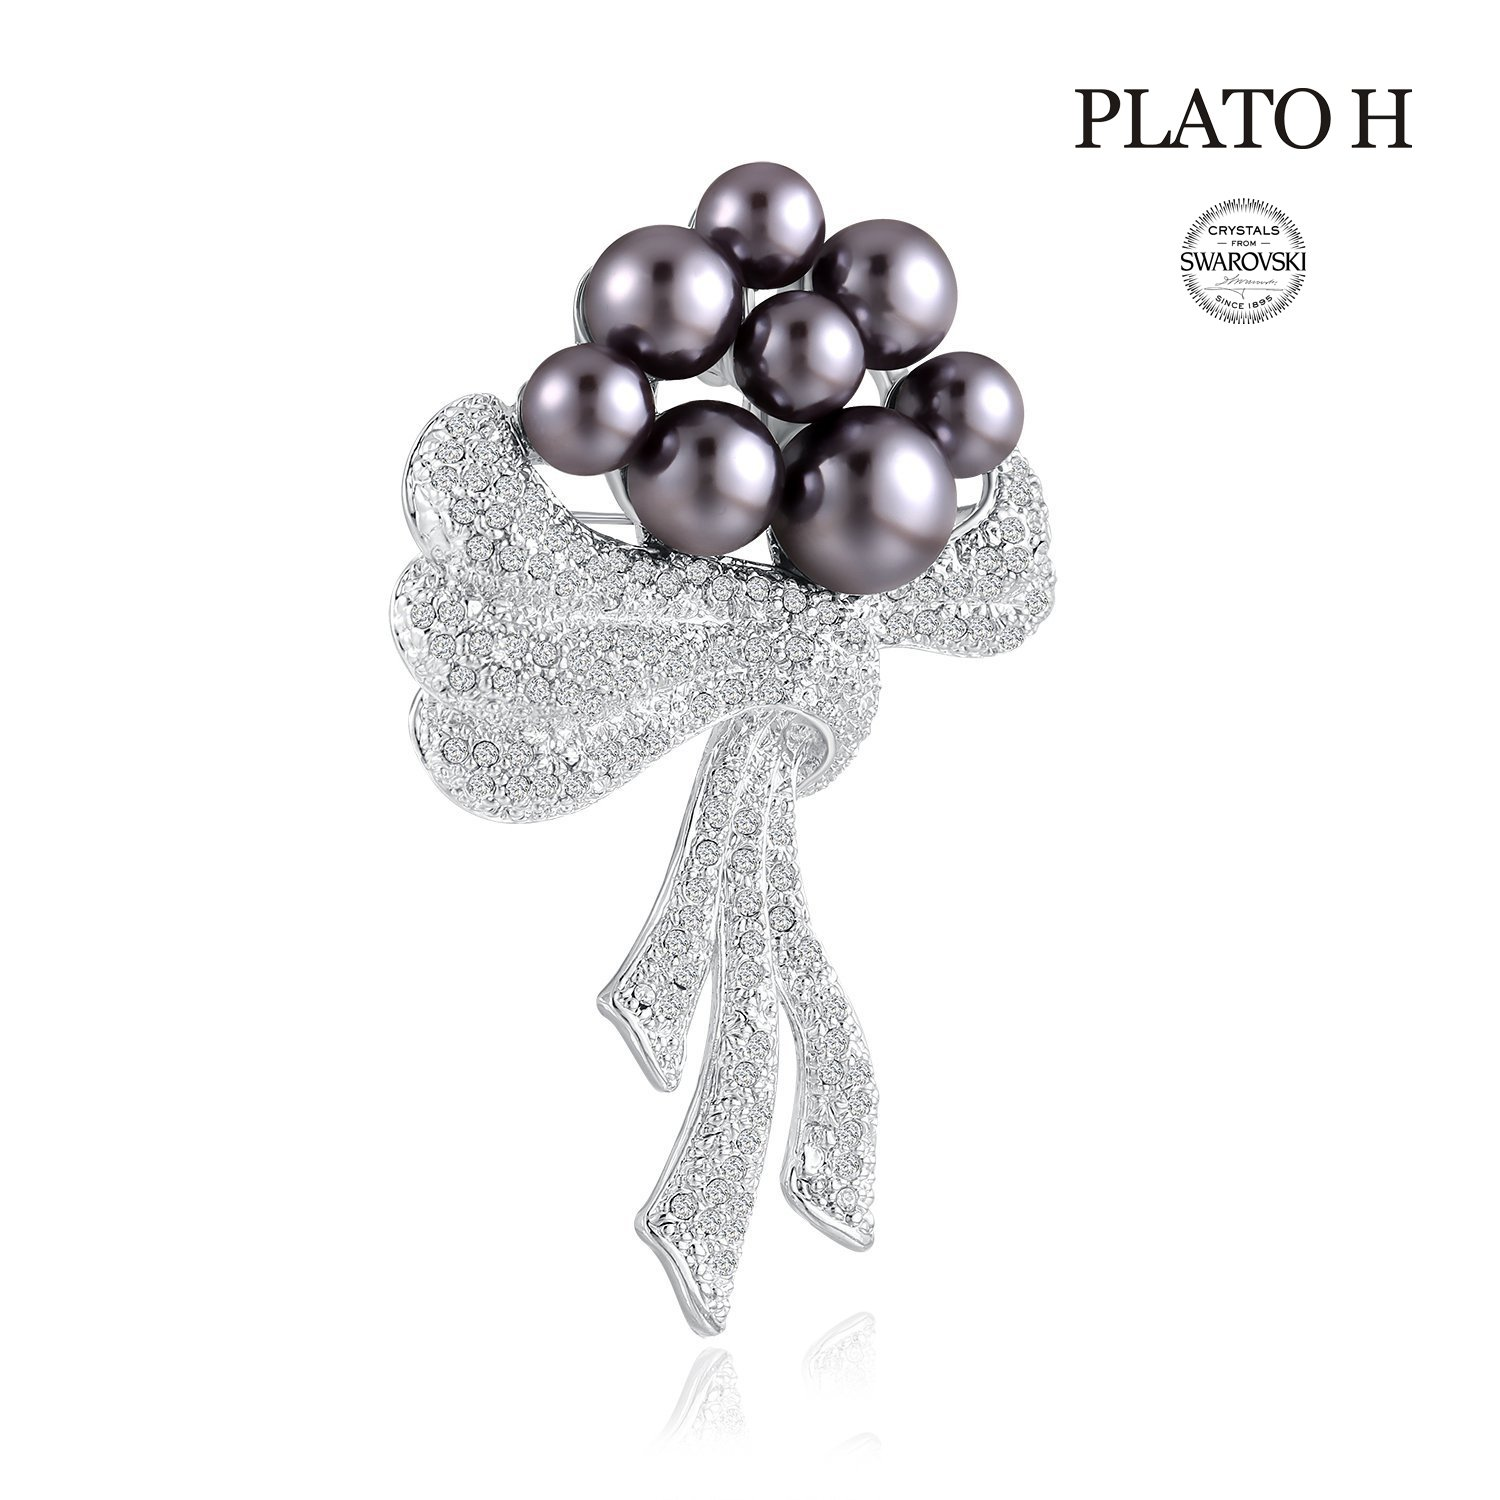 Crystal Brooch Pins PLATO H Women Fashion Jewelry Noble Cultured Pearl & Scarf Brooch with Swarovski Crystal Romantic Gift for Her